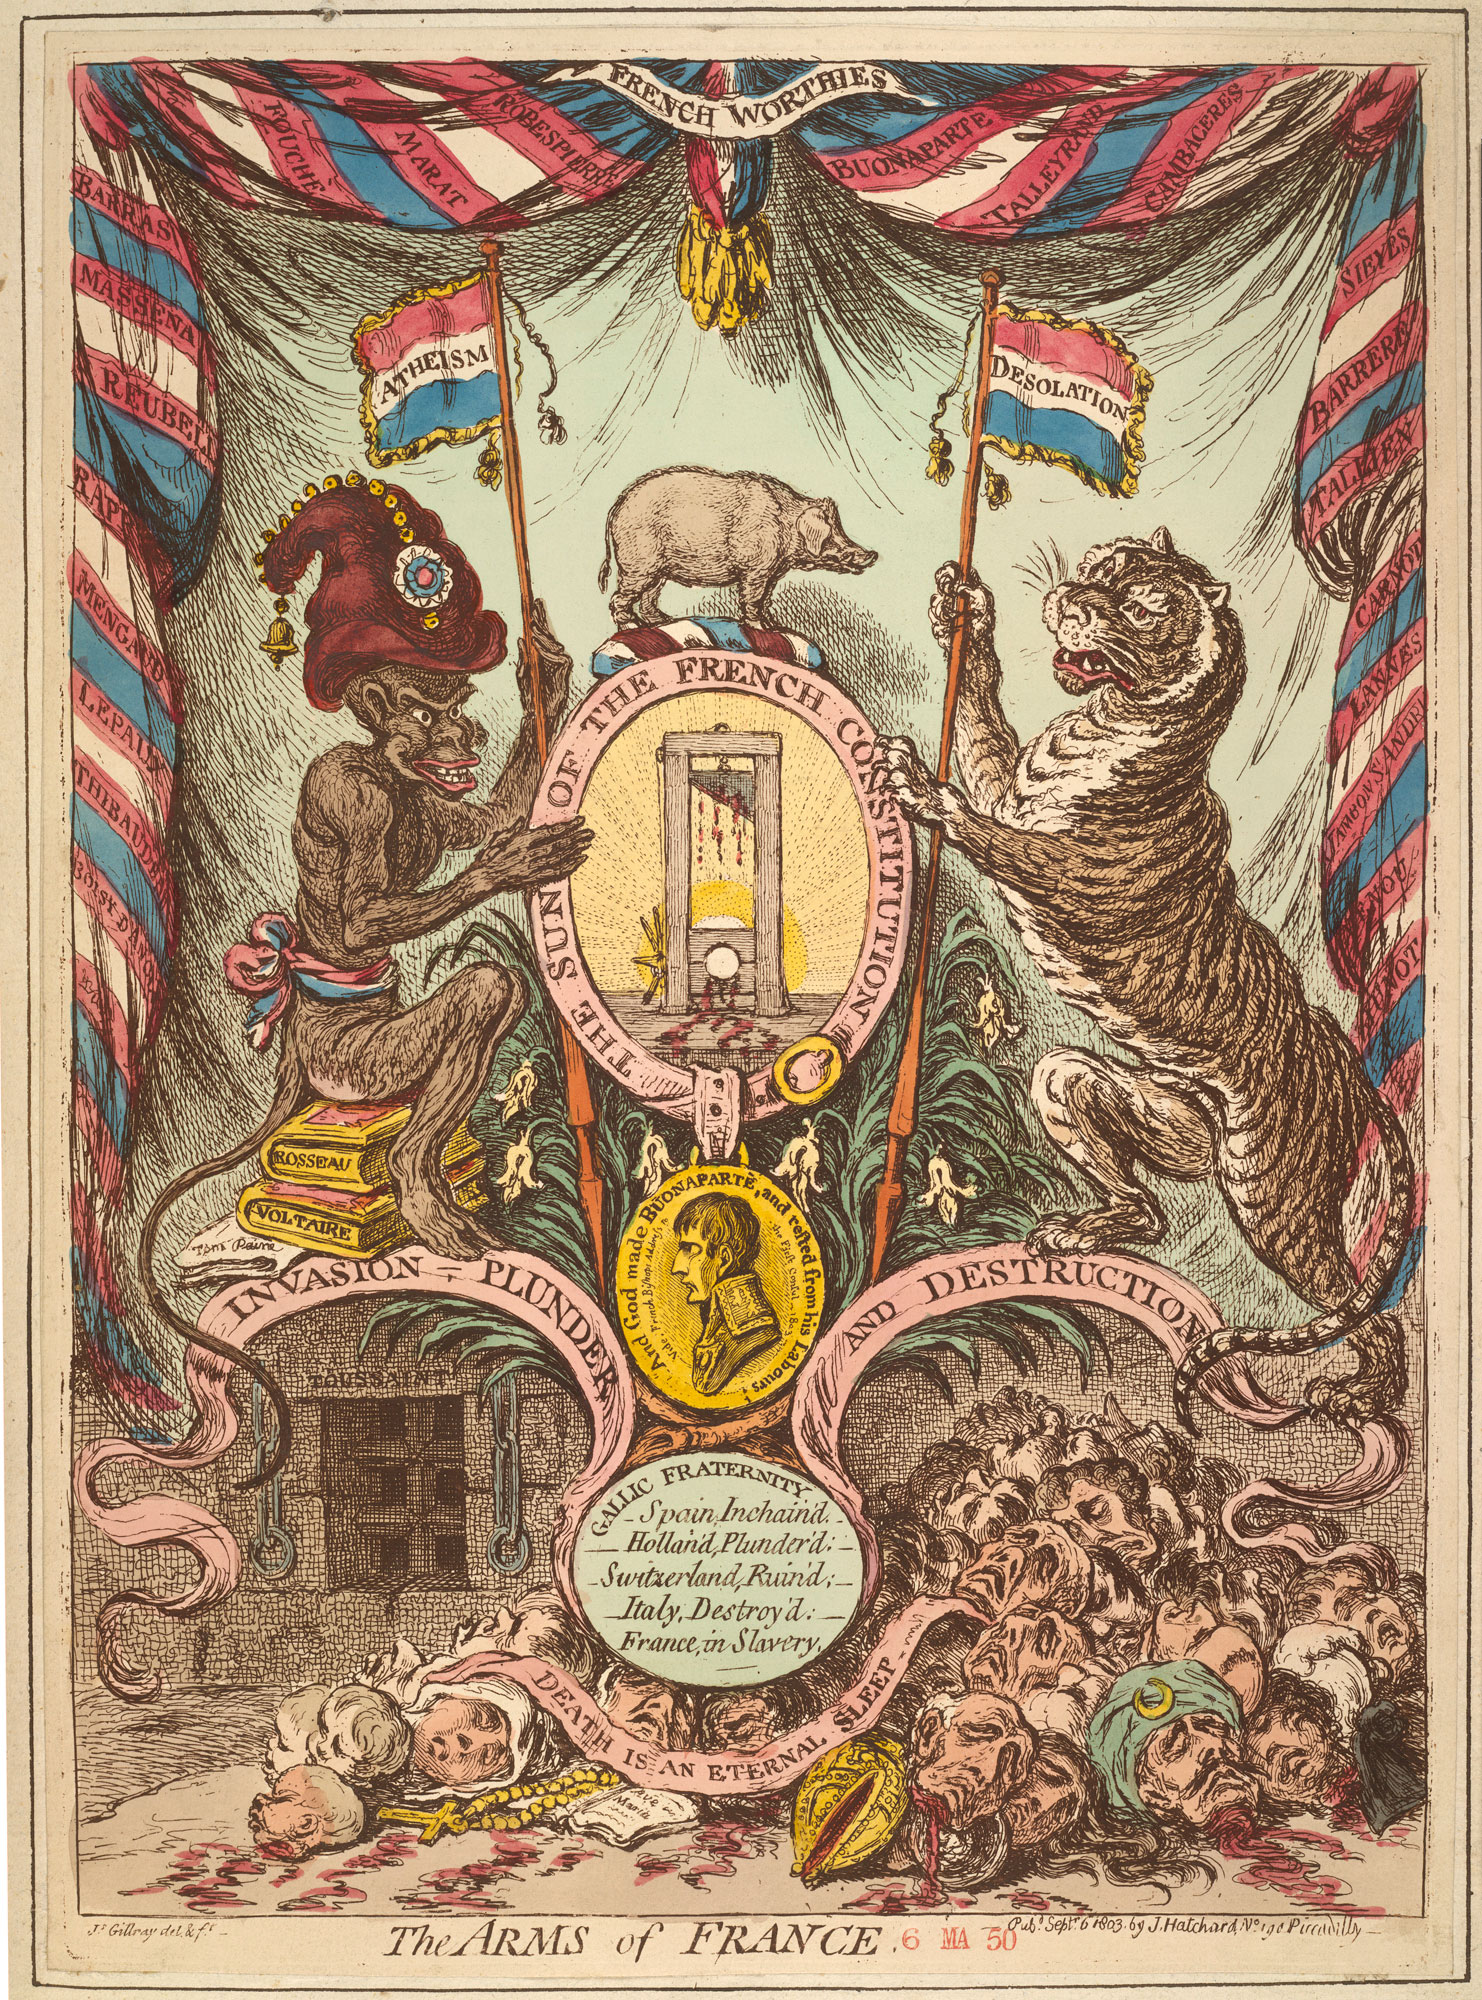 The Arms of France, from a collection of material relating to the fear of a French invasion